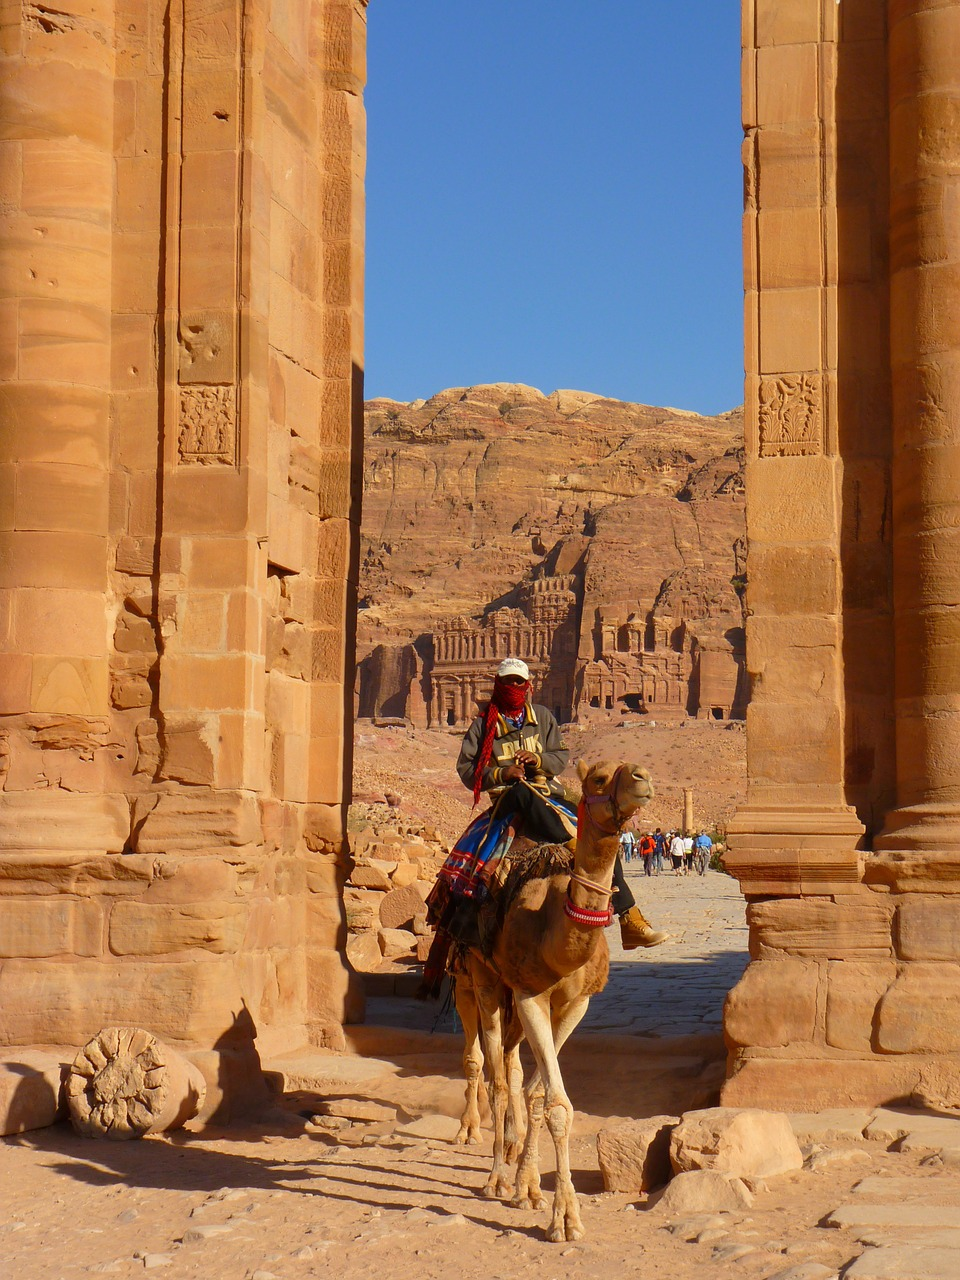 petra jordan holiday free photo